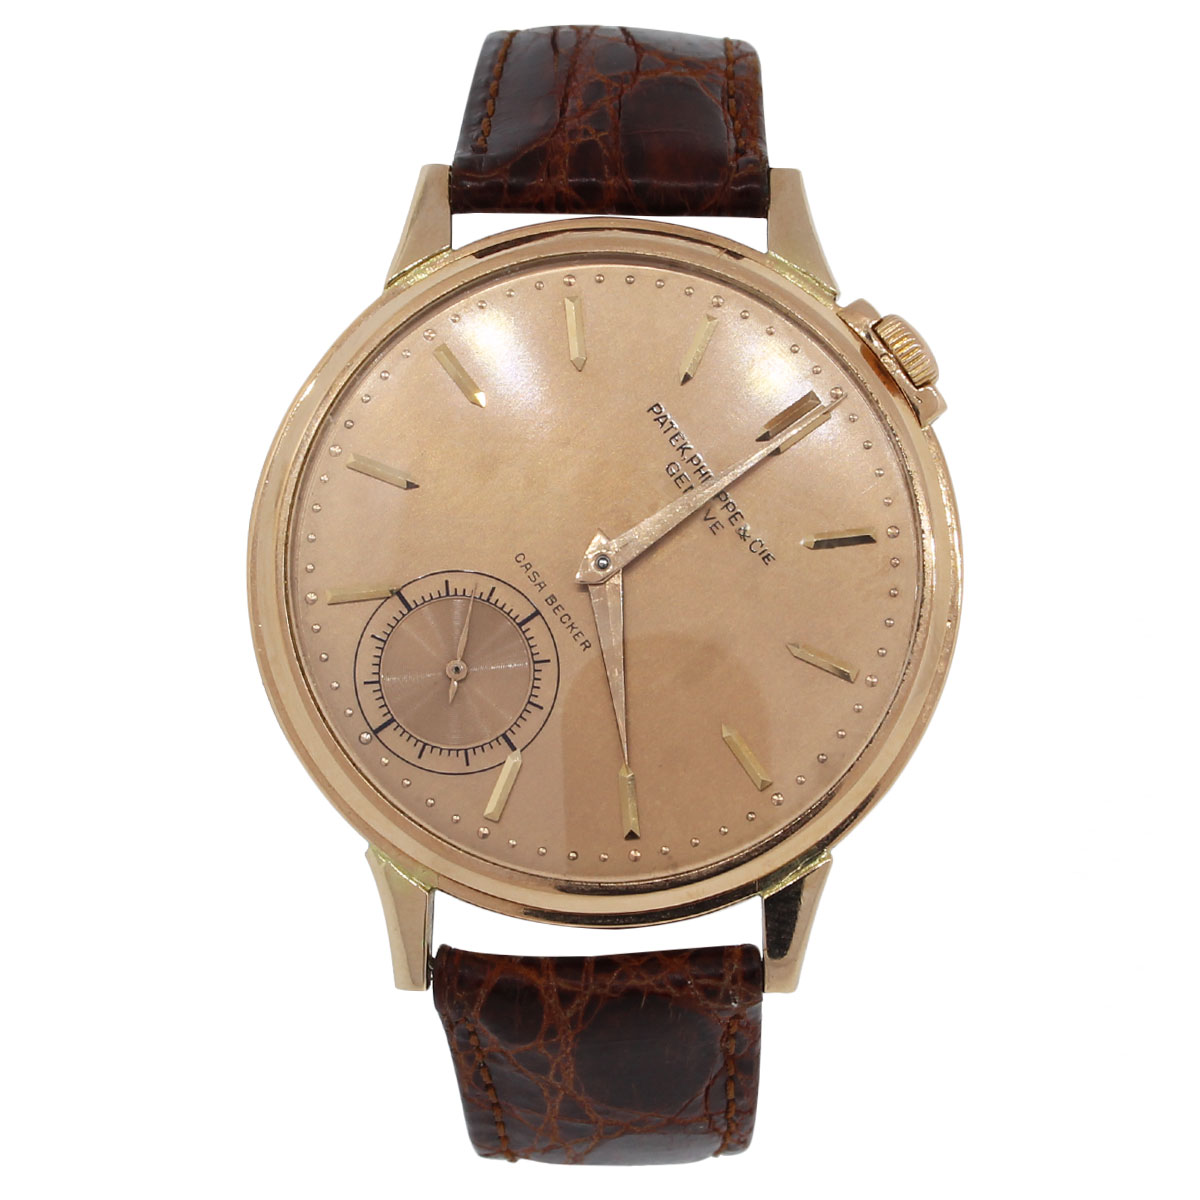 Patek Philippe Casa Becker 18K Rose Gold Brown Leather Watch